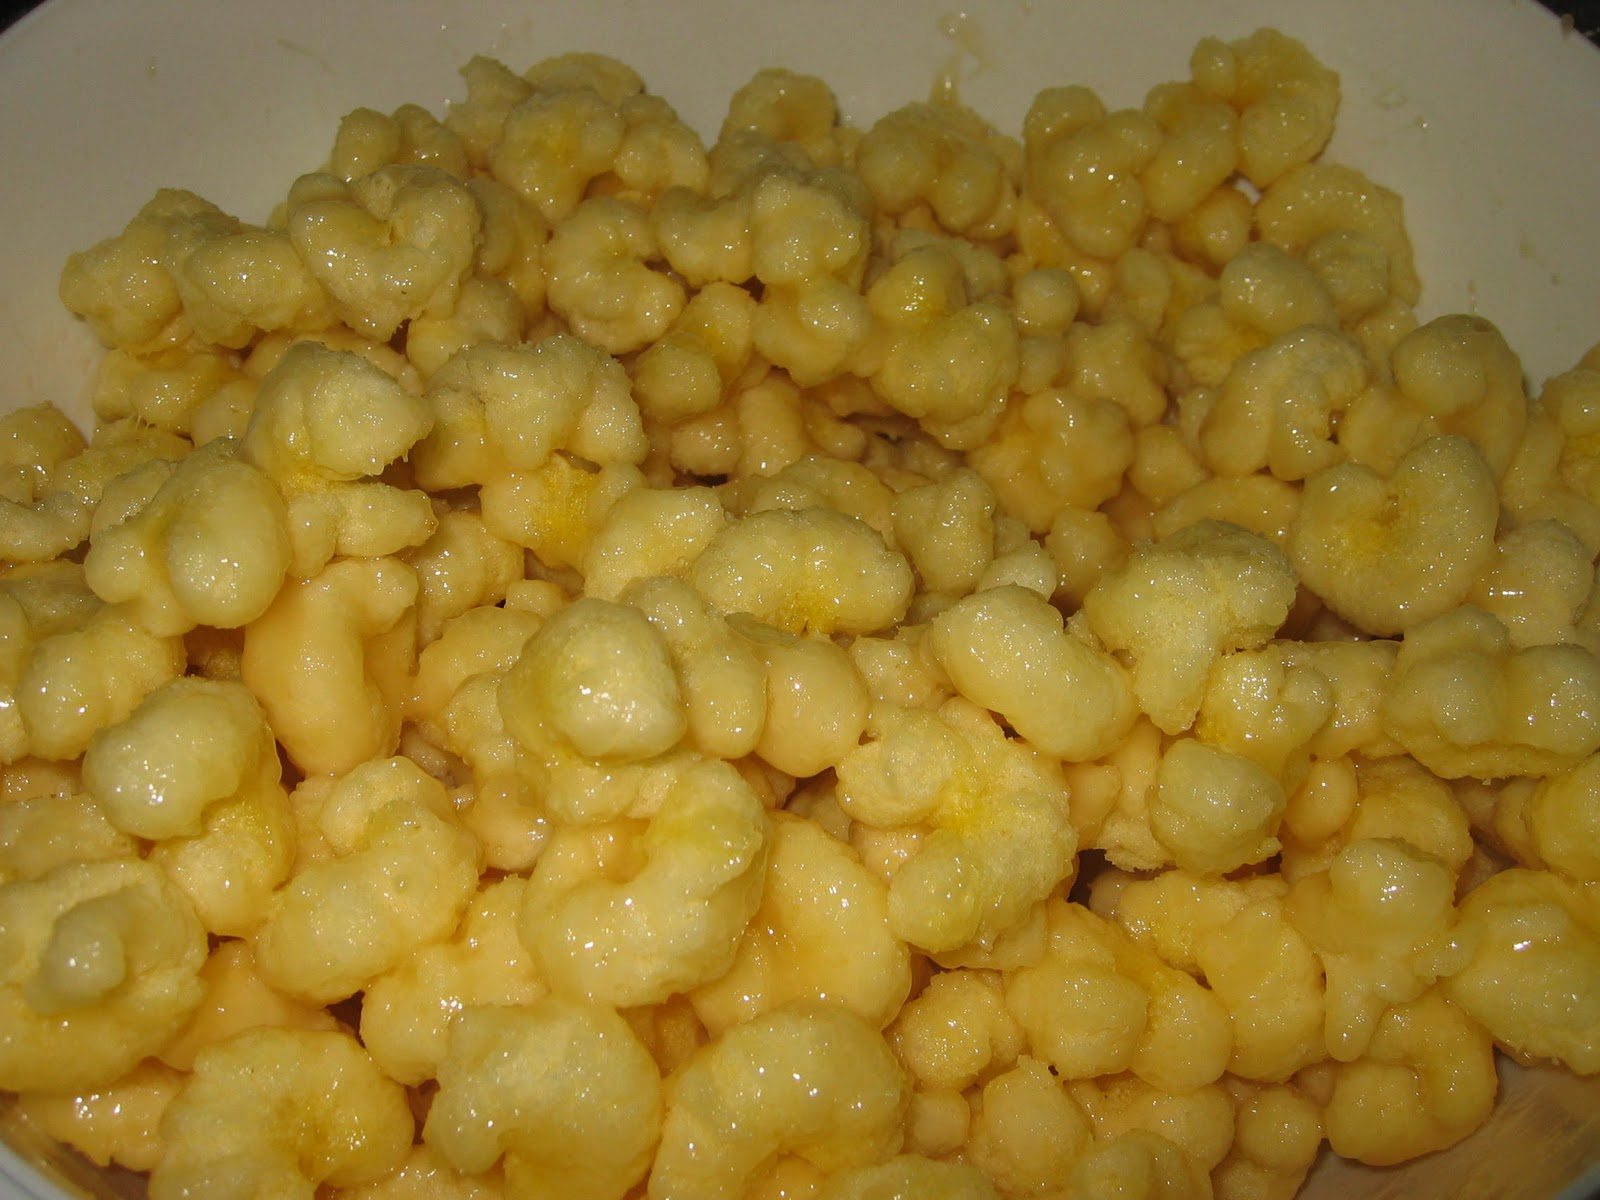 Small White Worms In Kitchen Kristis Kitchen Kreations Worms Candied Corn Puffs